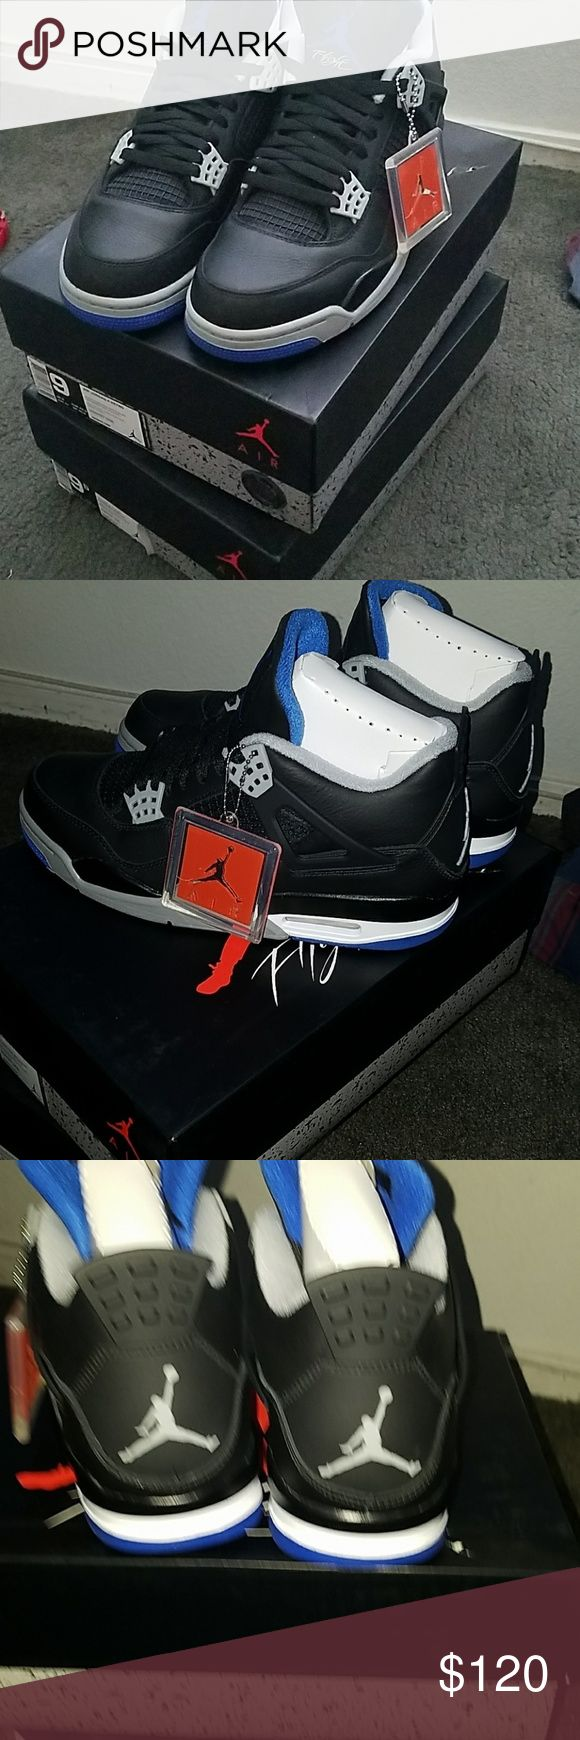 Jordan 4 motorsport Text me if interested comes with receipt and all my shoes are new and deadstock (702) 500-4706 Jordan Shoes Sneakers